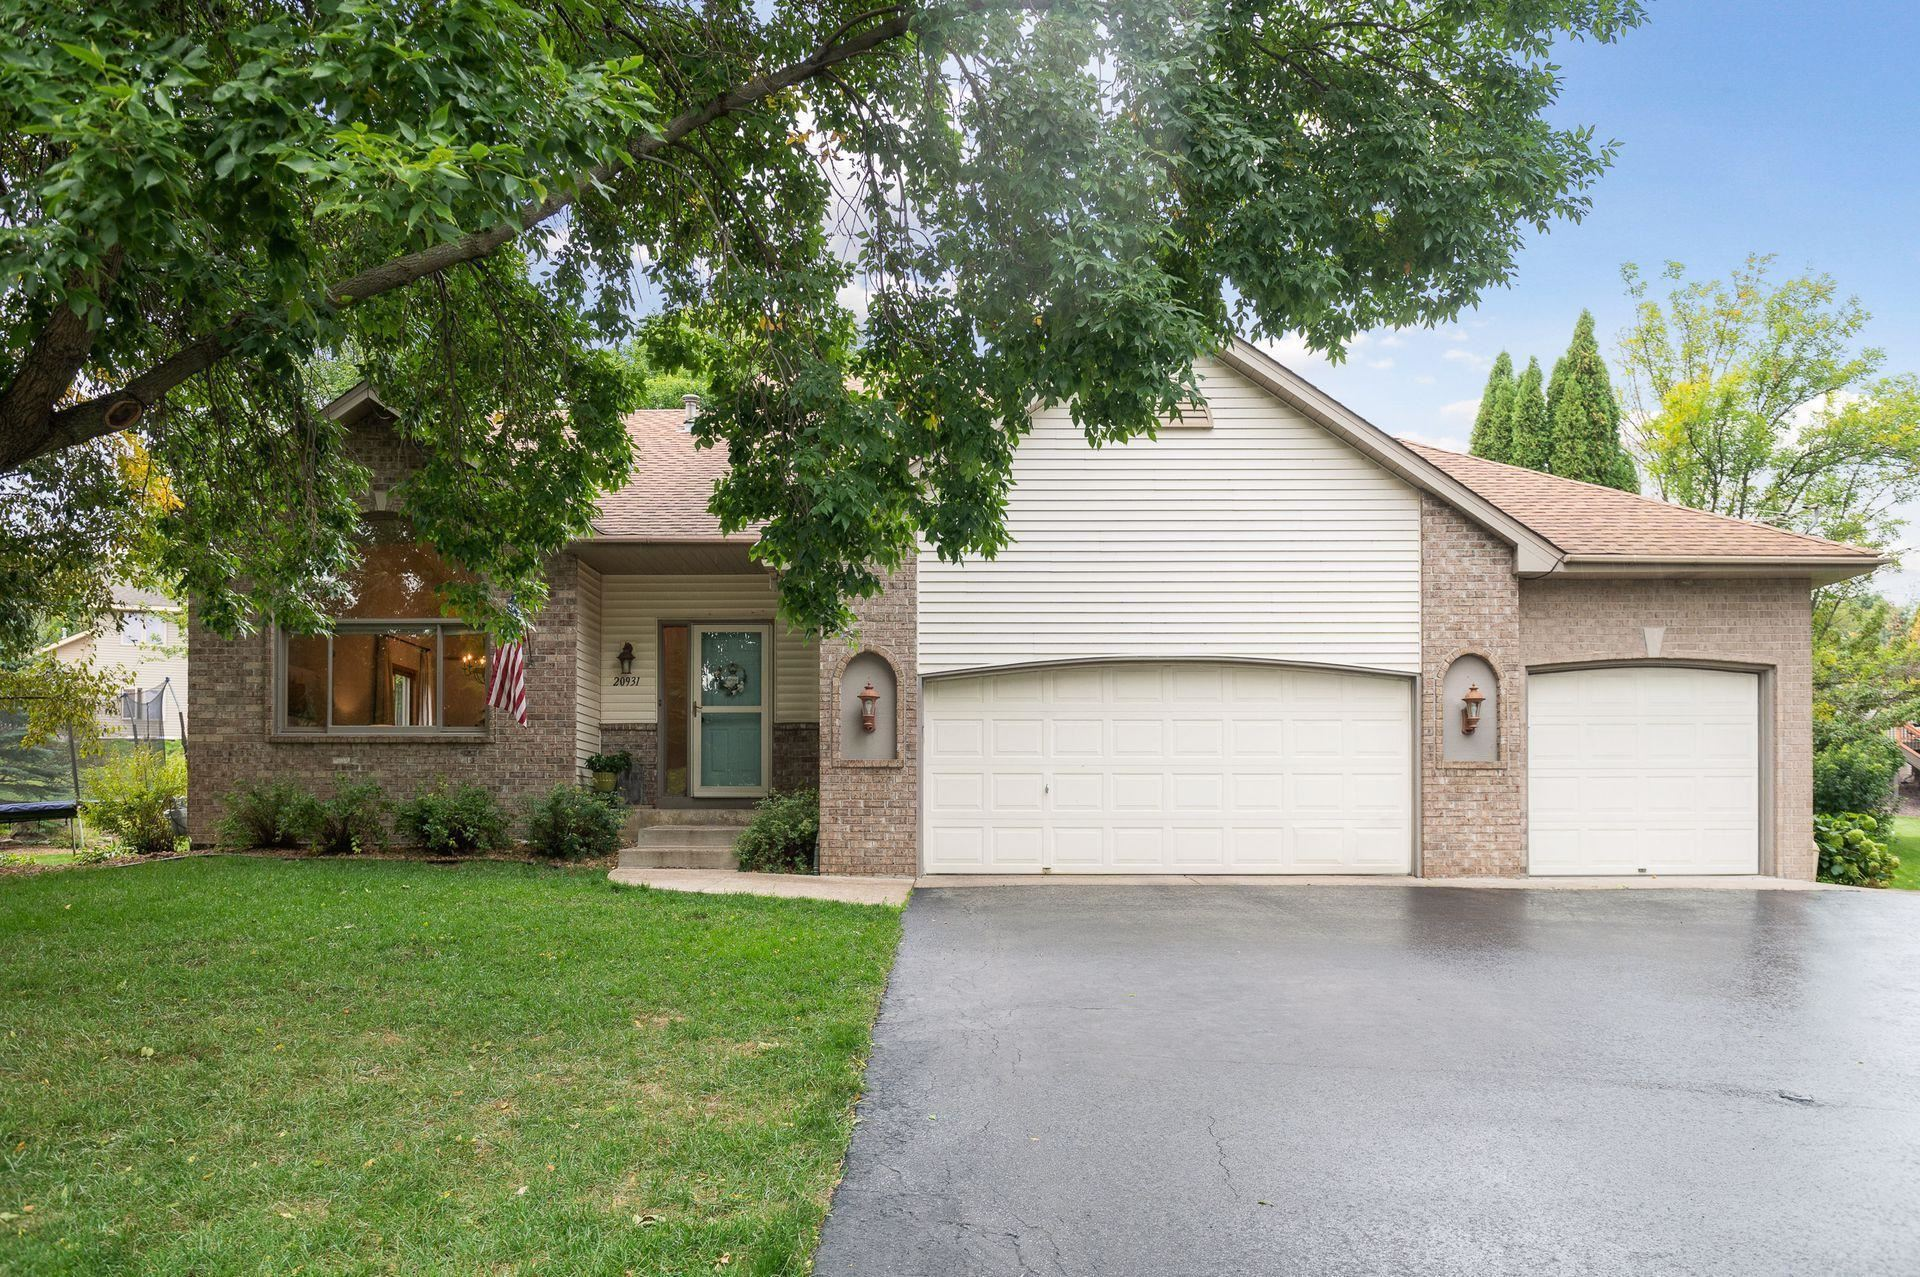 Photo of 20931 Jameswood Court, Lakeville, MN 55044 (MLS # 6102915)